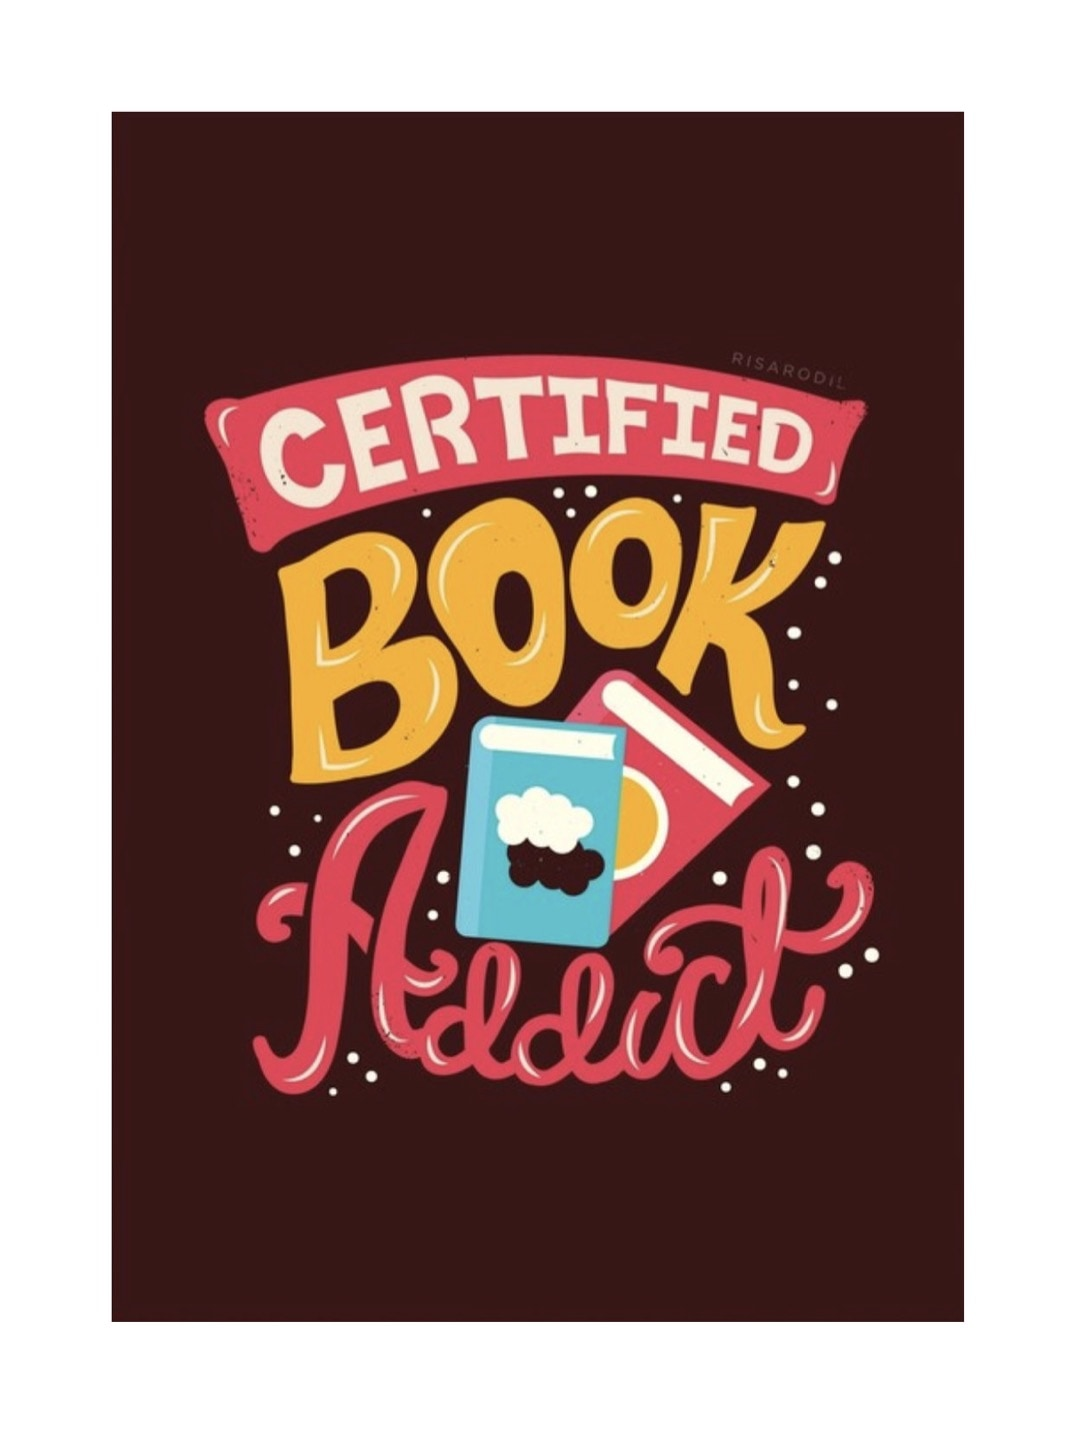 Certified book addict by Risa Rodil - best read posters